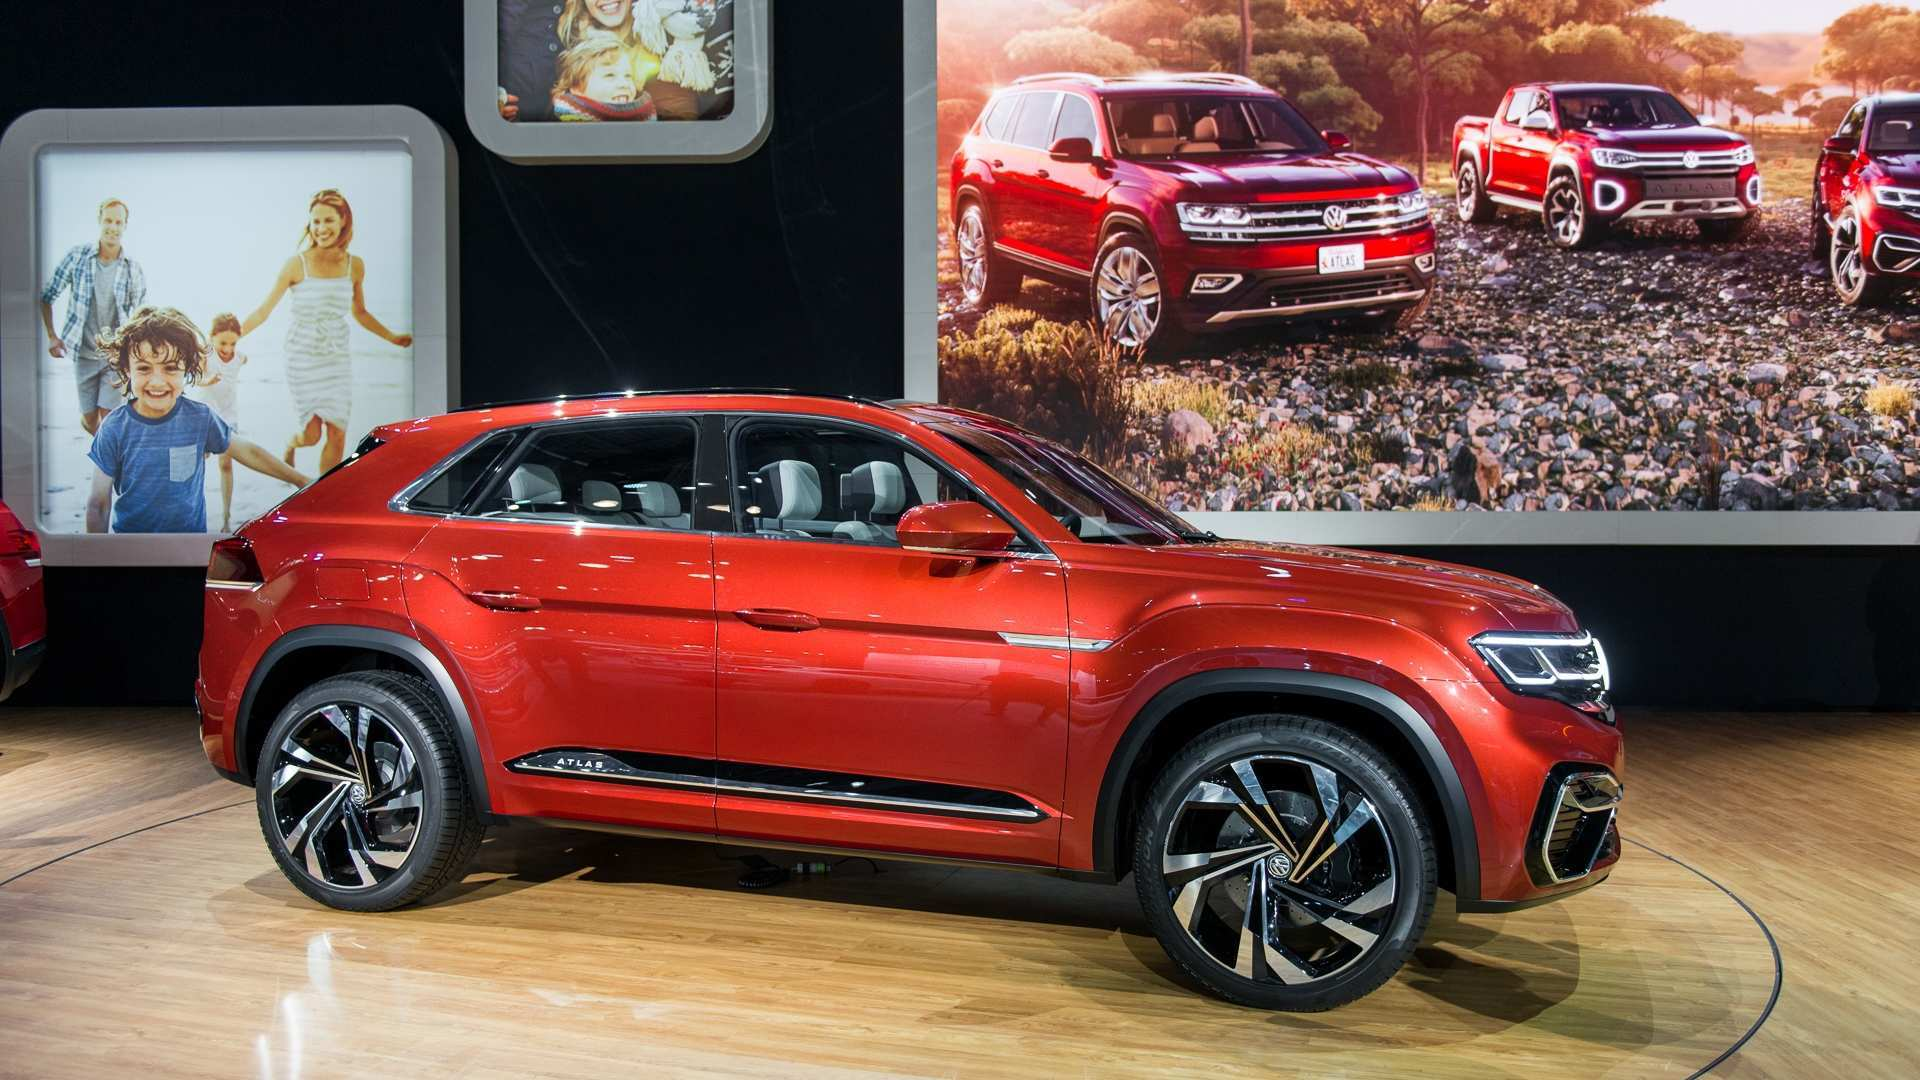 86 Concept of 2020 Volkswagen Atlas Release Date Model with 2020 Volkswagen Atlas Release Date